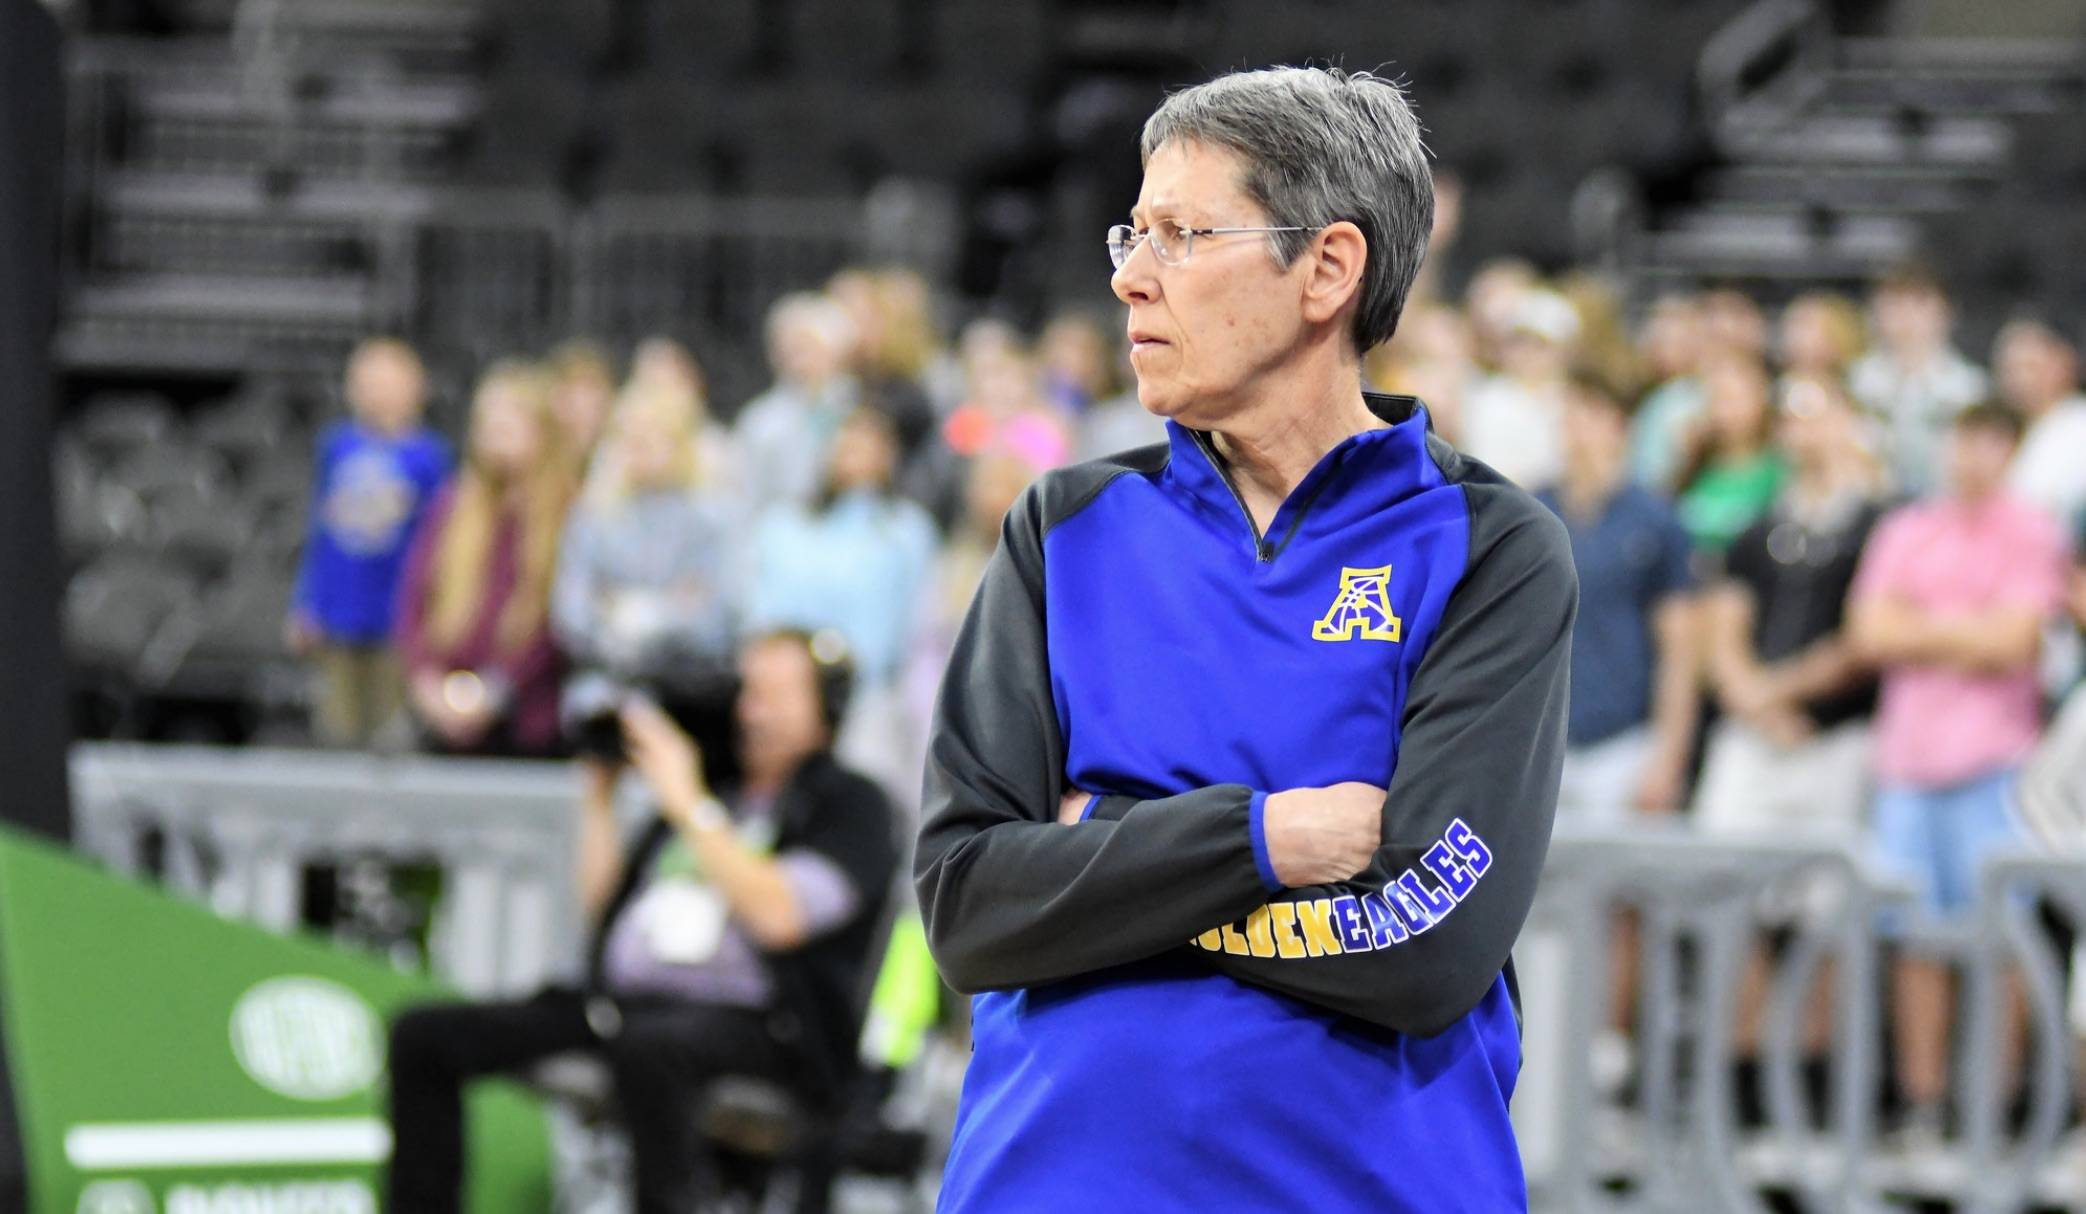 Head coach Dawn Seiler